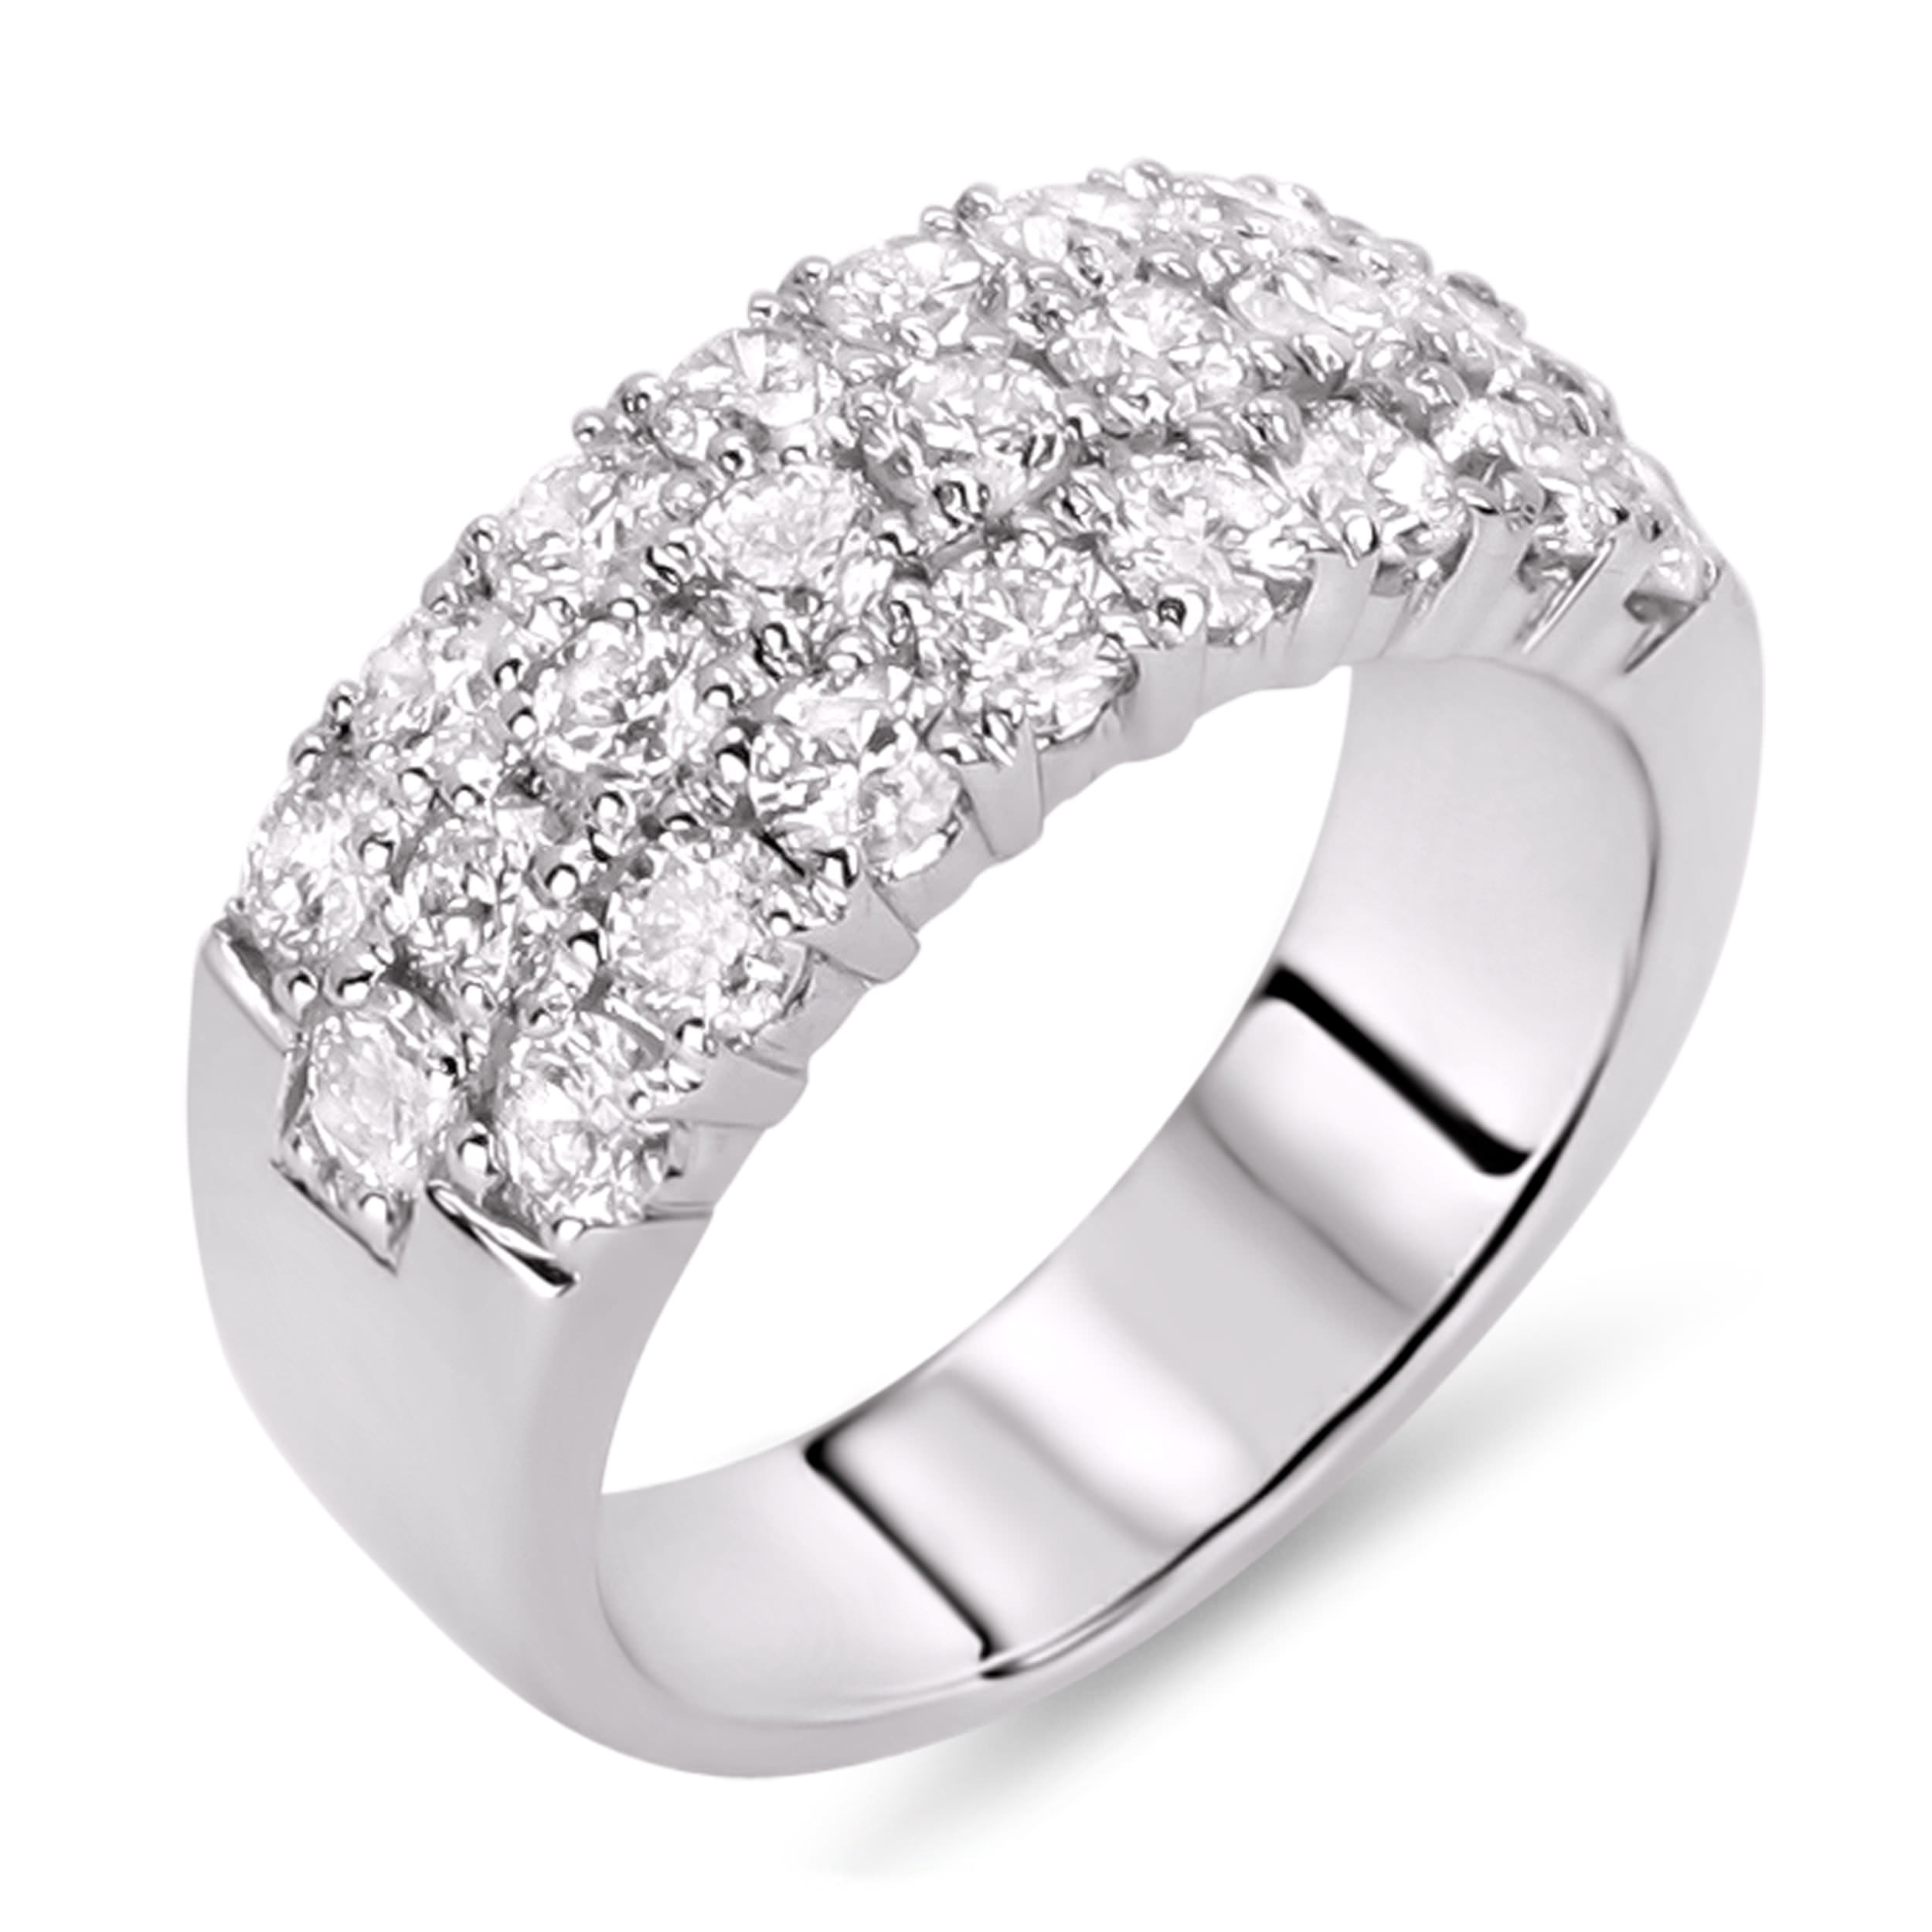 jewellery ring designs product jewelry diamond anniversary bezel rings eternity category